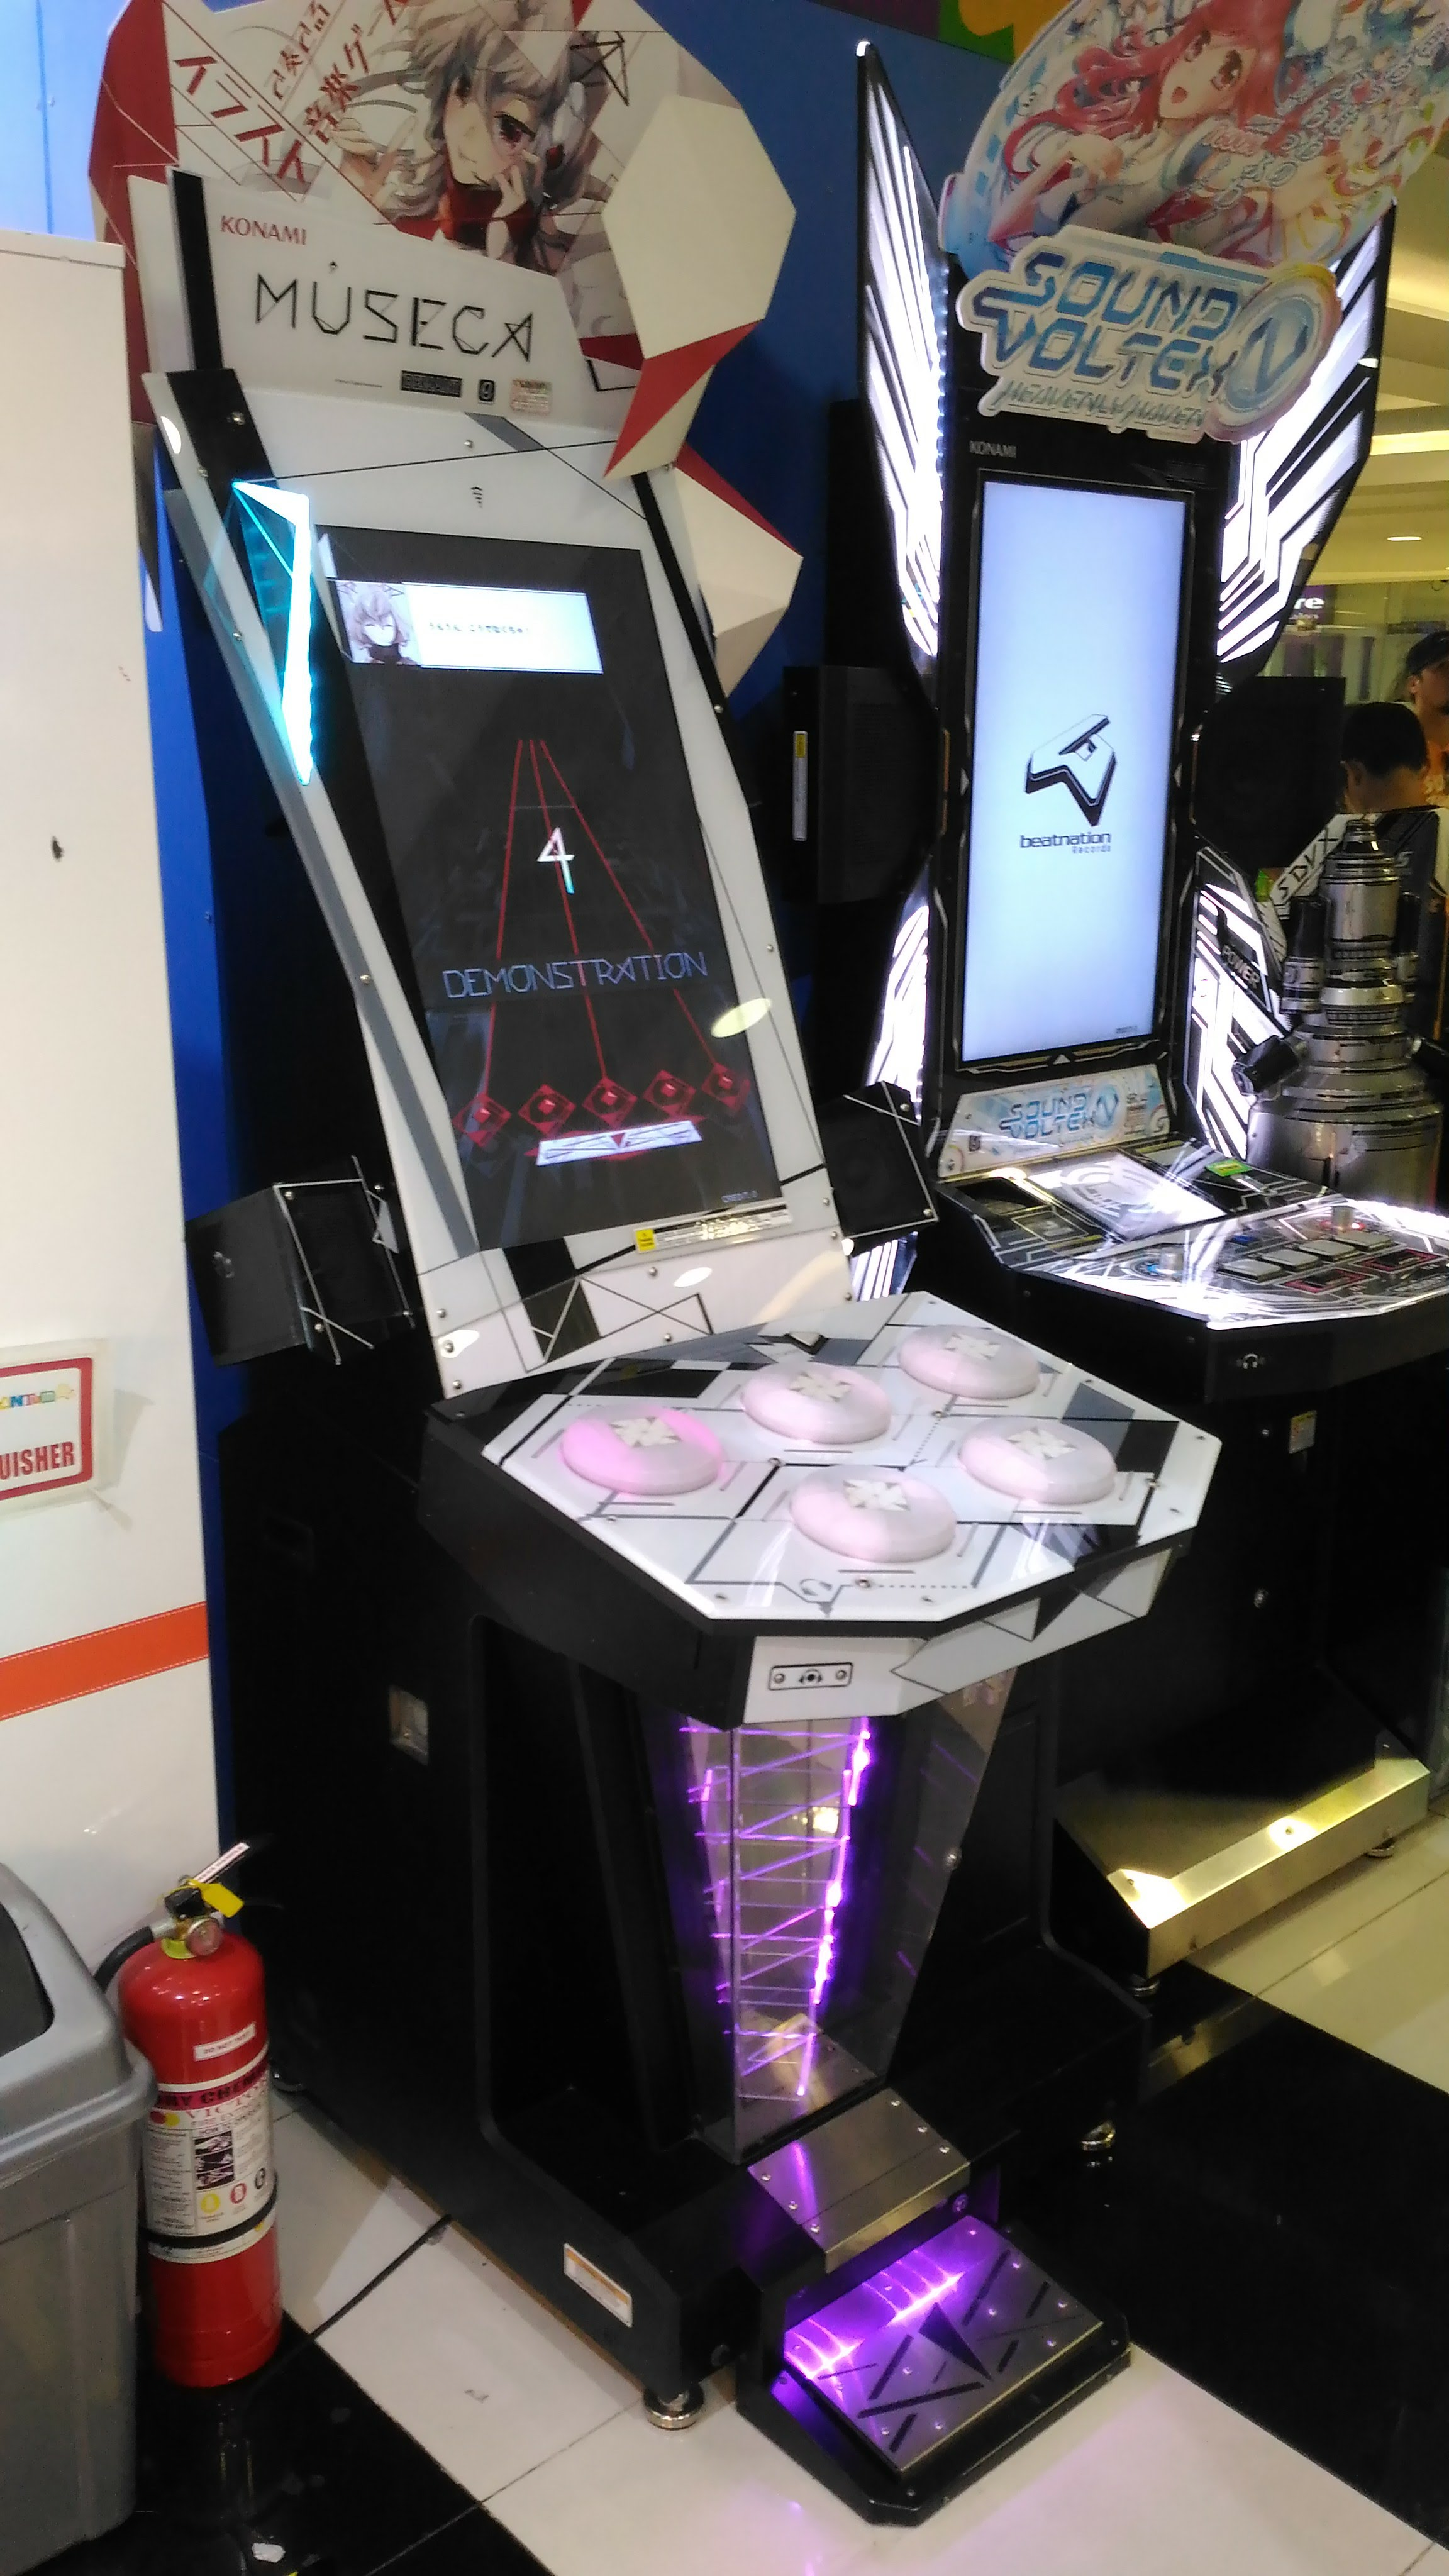 MUSECA and Sound Voltex - Arcade Locations - Picture Gallery